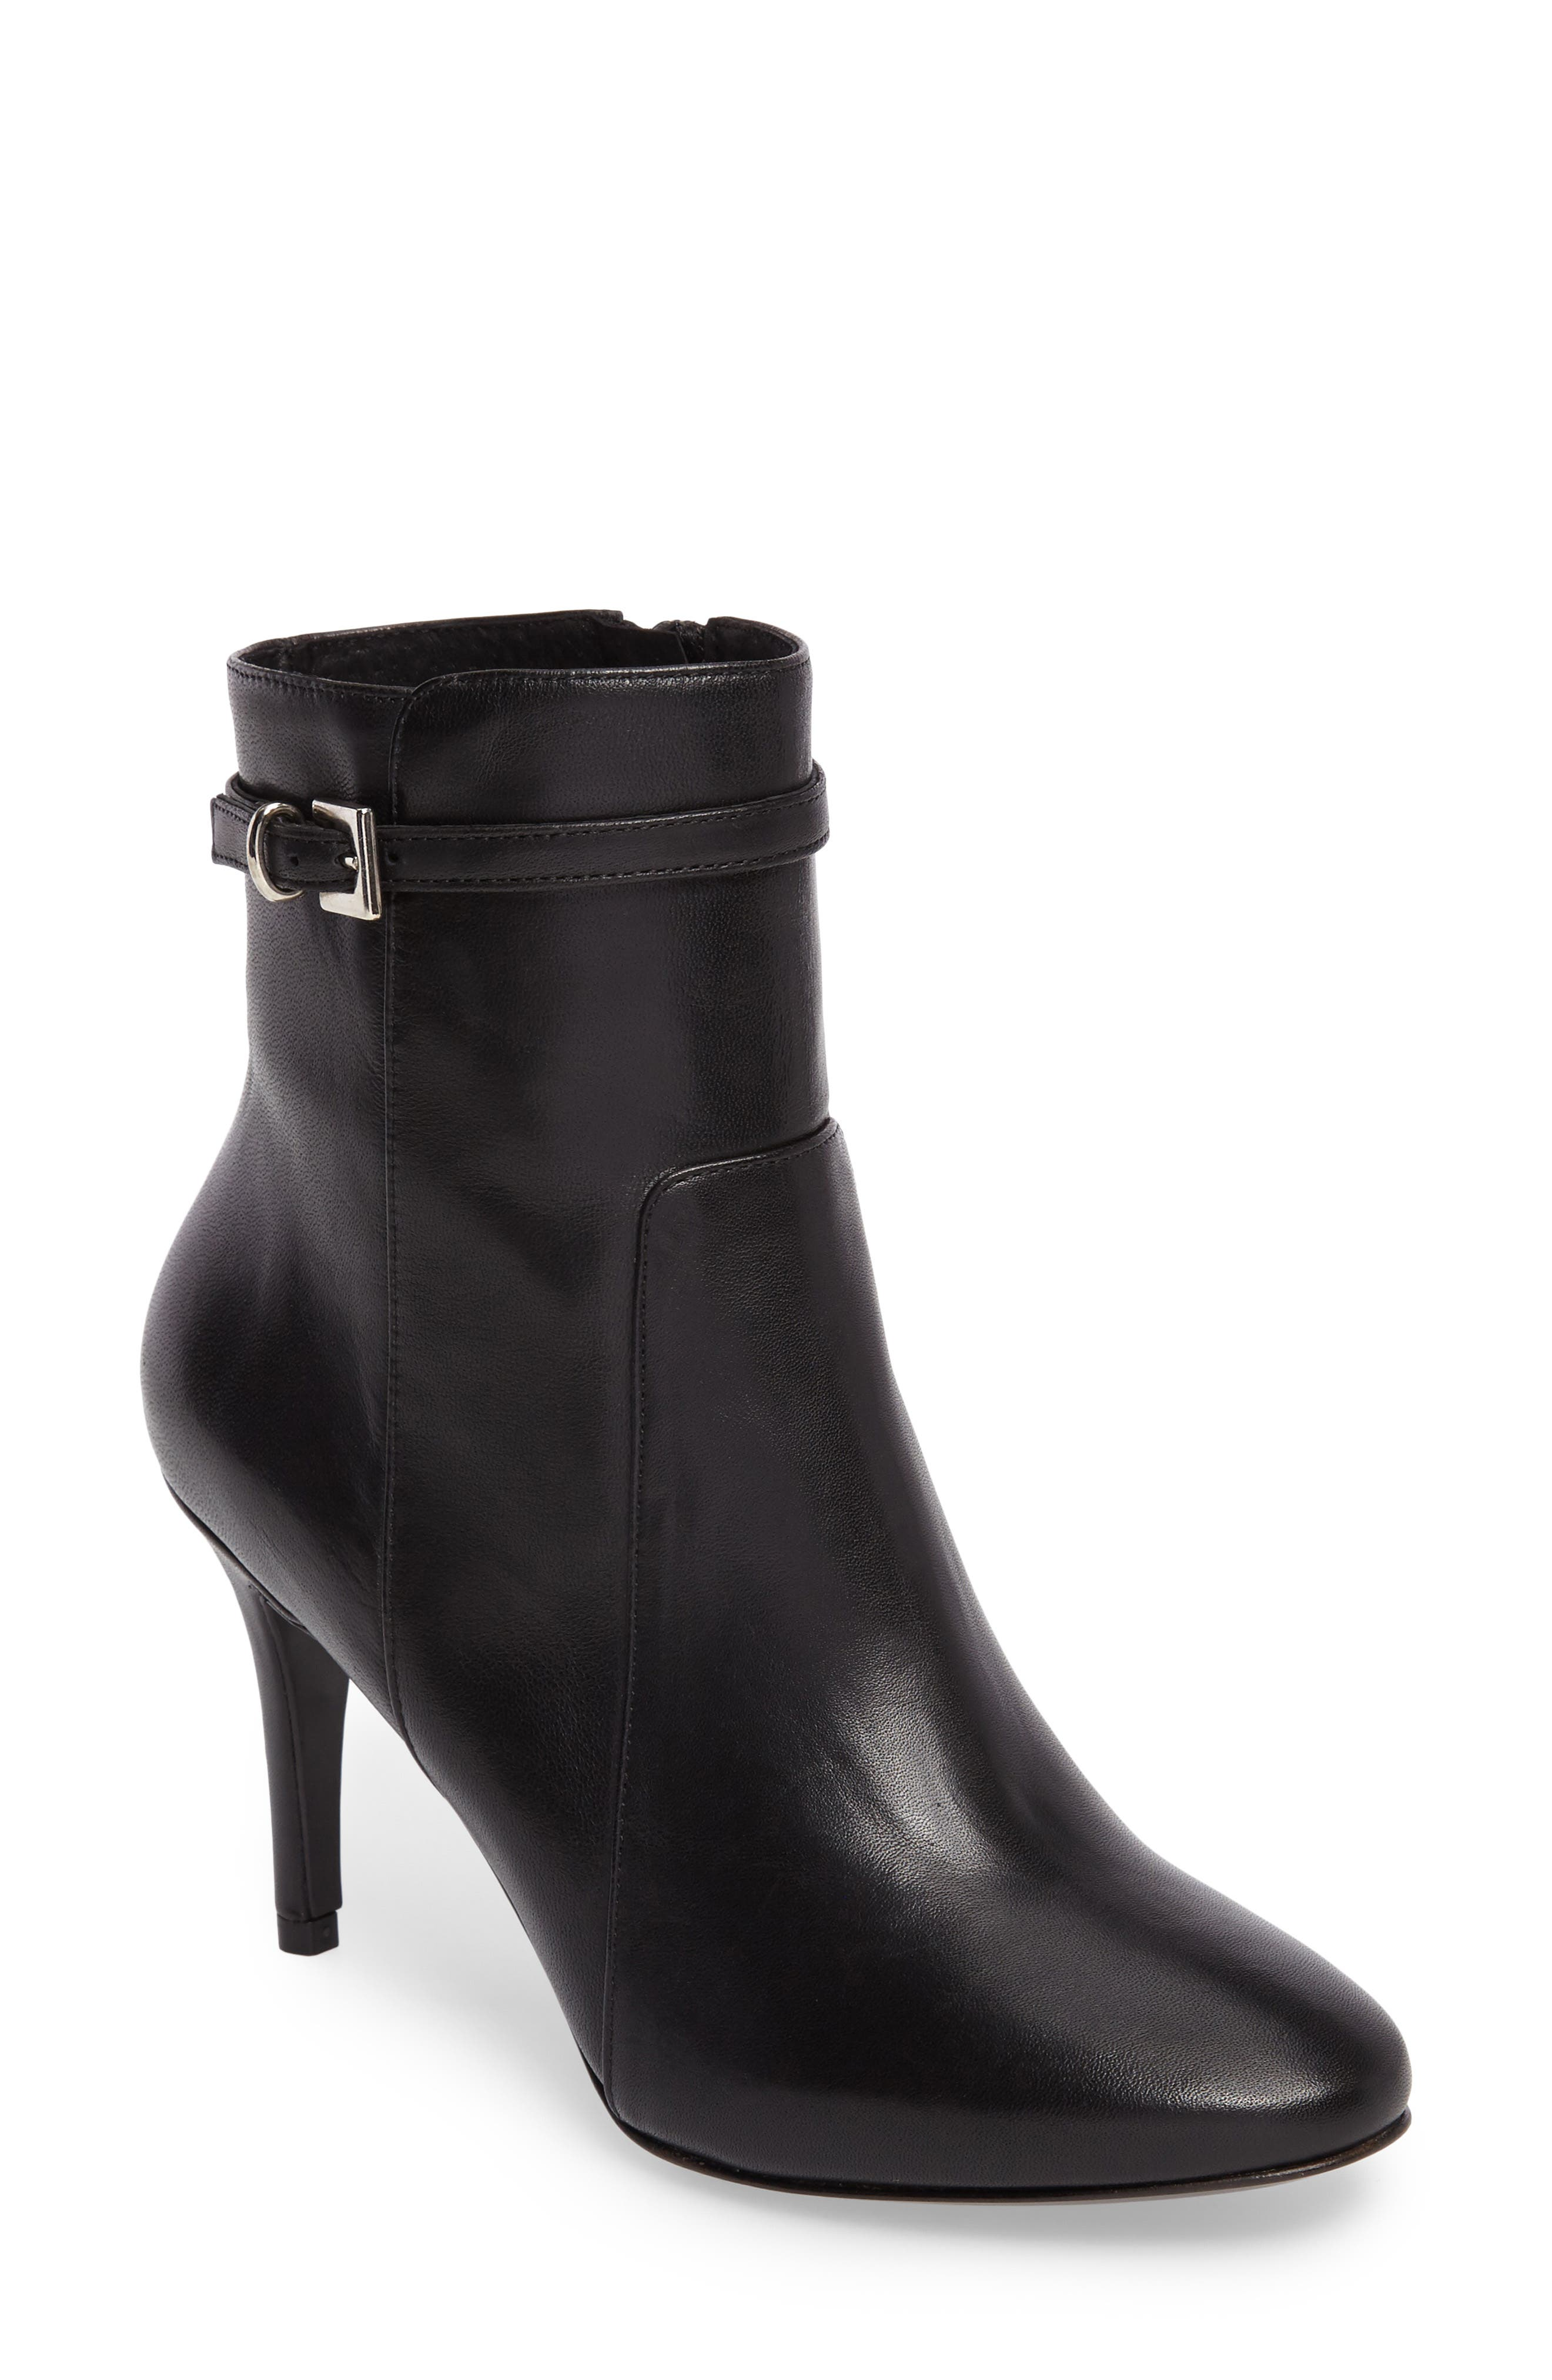 Prism Buckle Strap Bootie,                             Main thumbnail 1, color,                             001